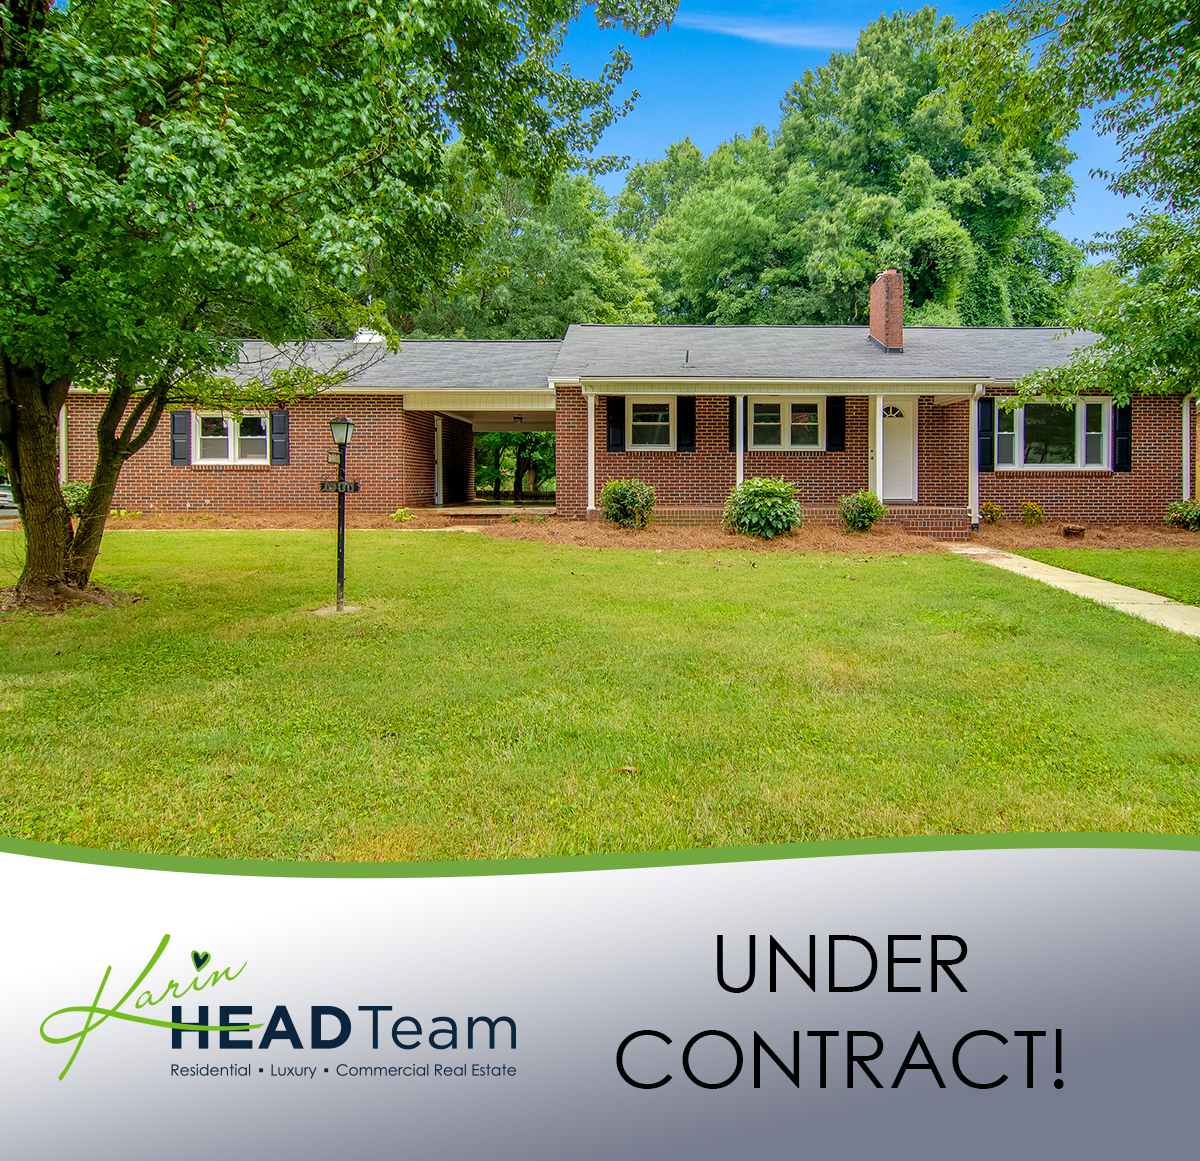 UnderContract_1500 Polo Road.jpg